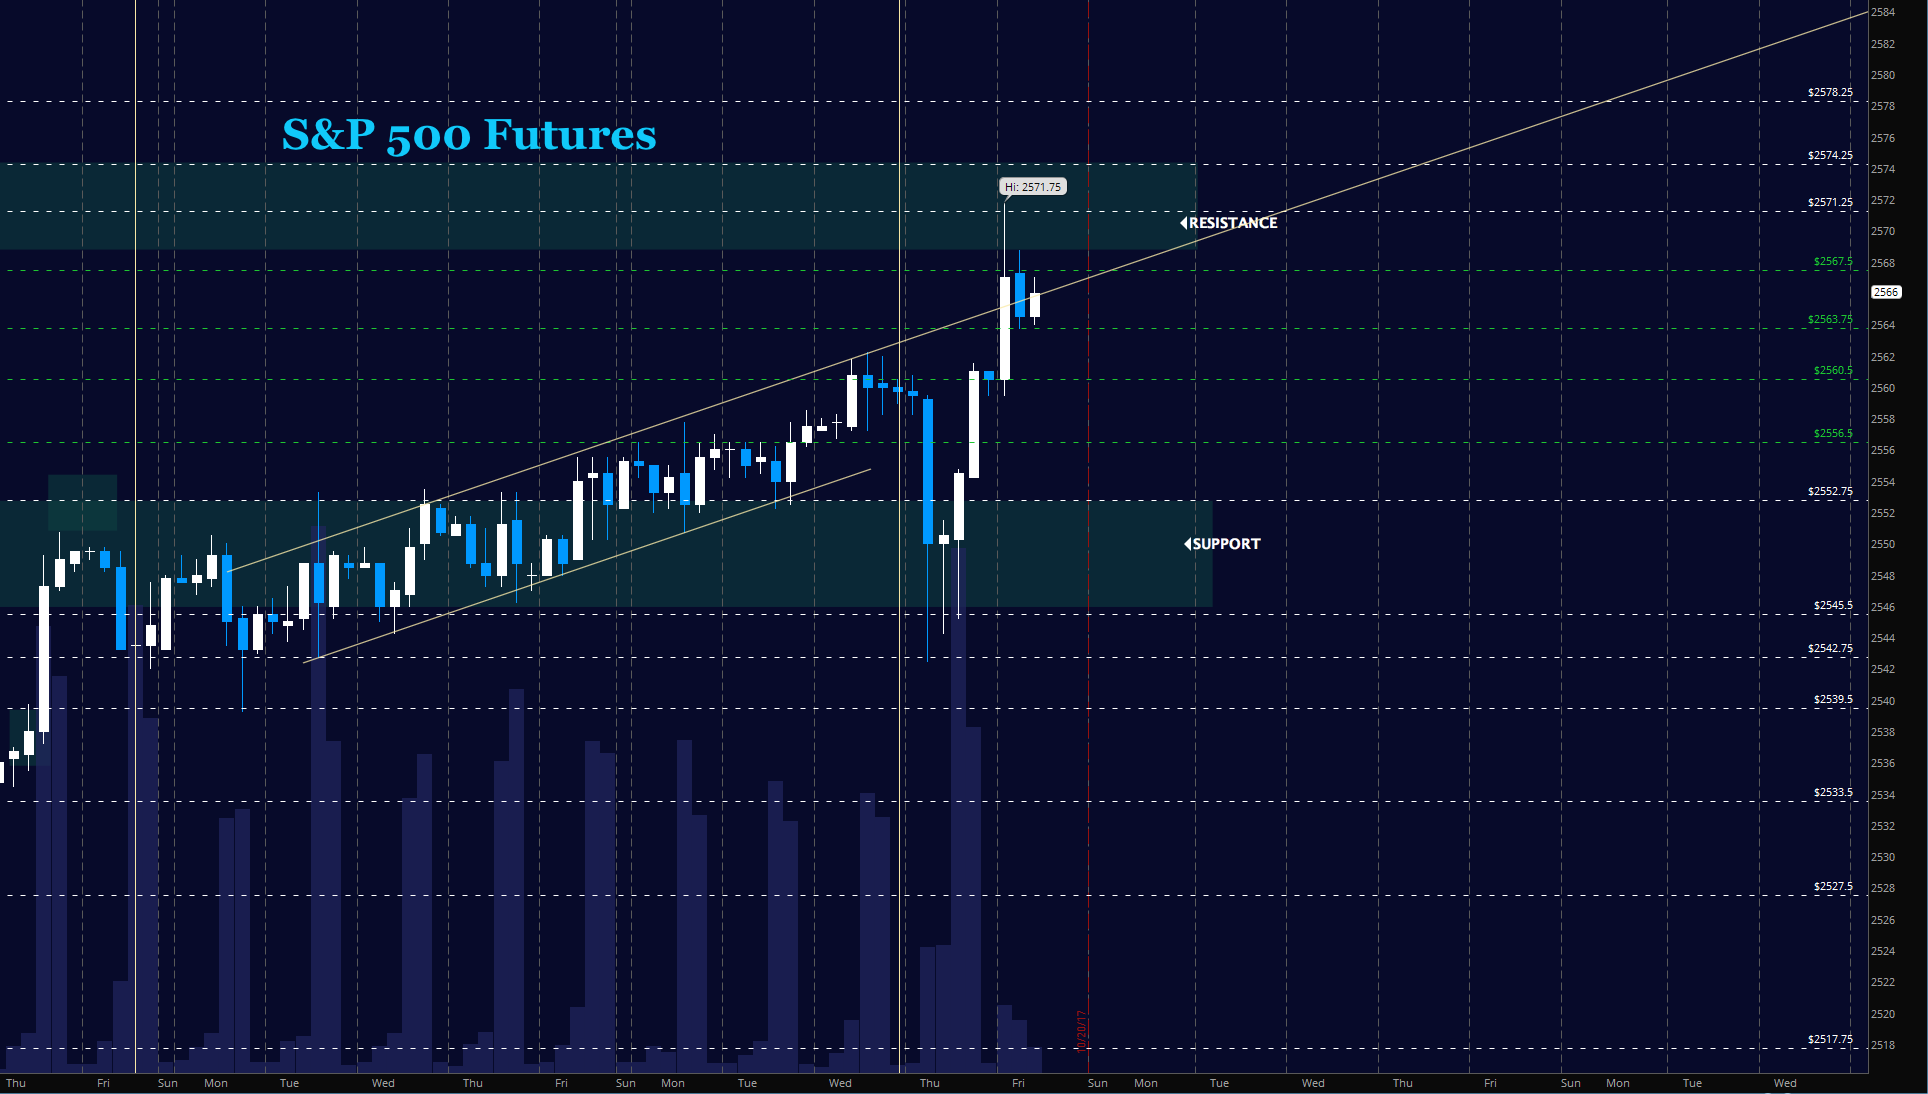 sp 500 futures october 20 news investing chart